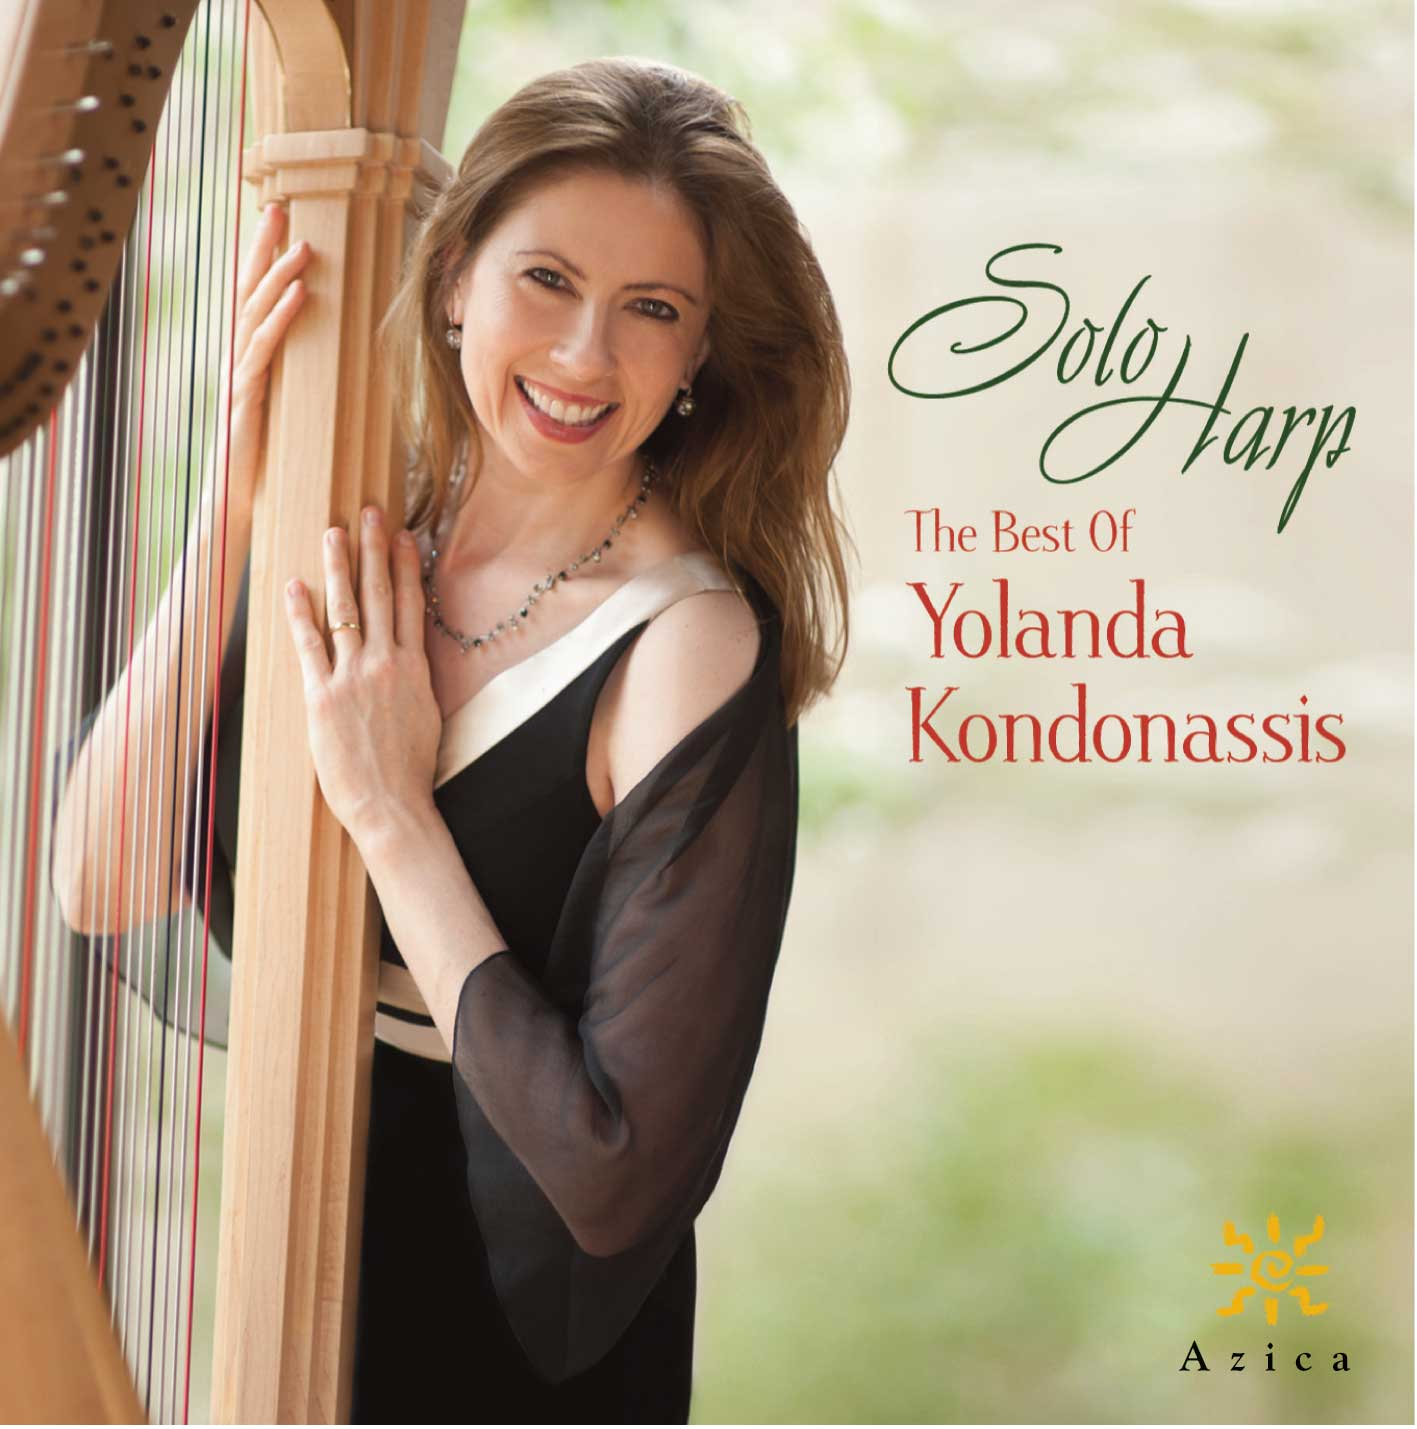 The Best of Yolanda Kondonassis CD